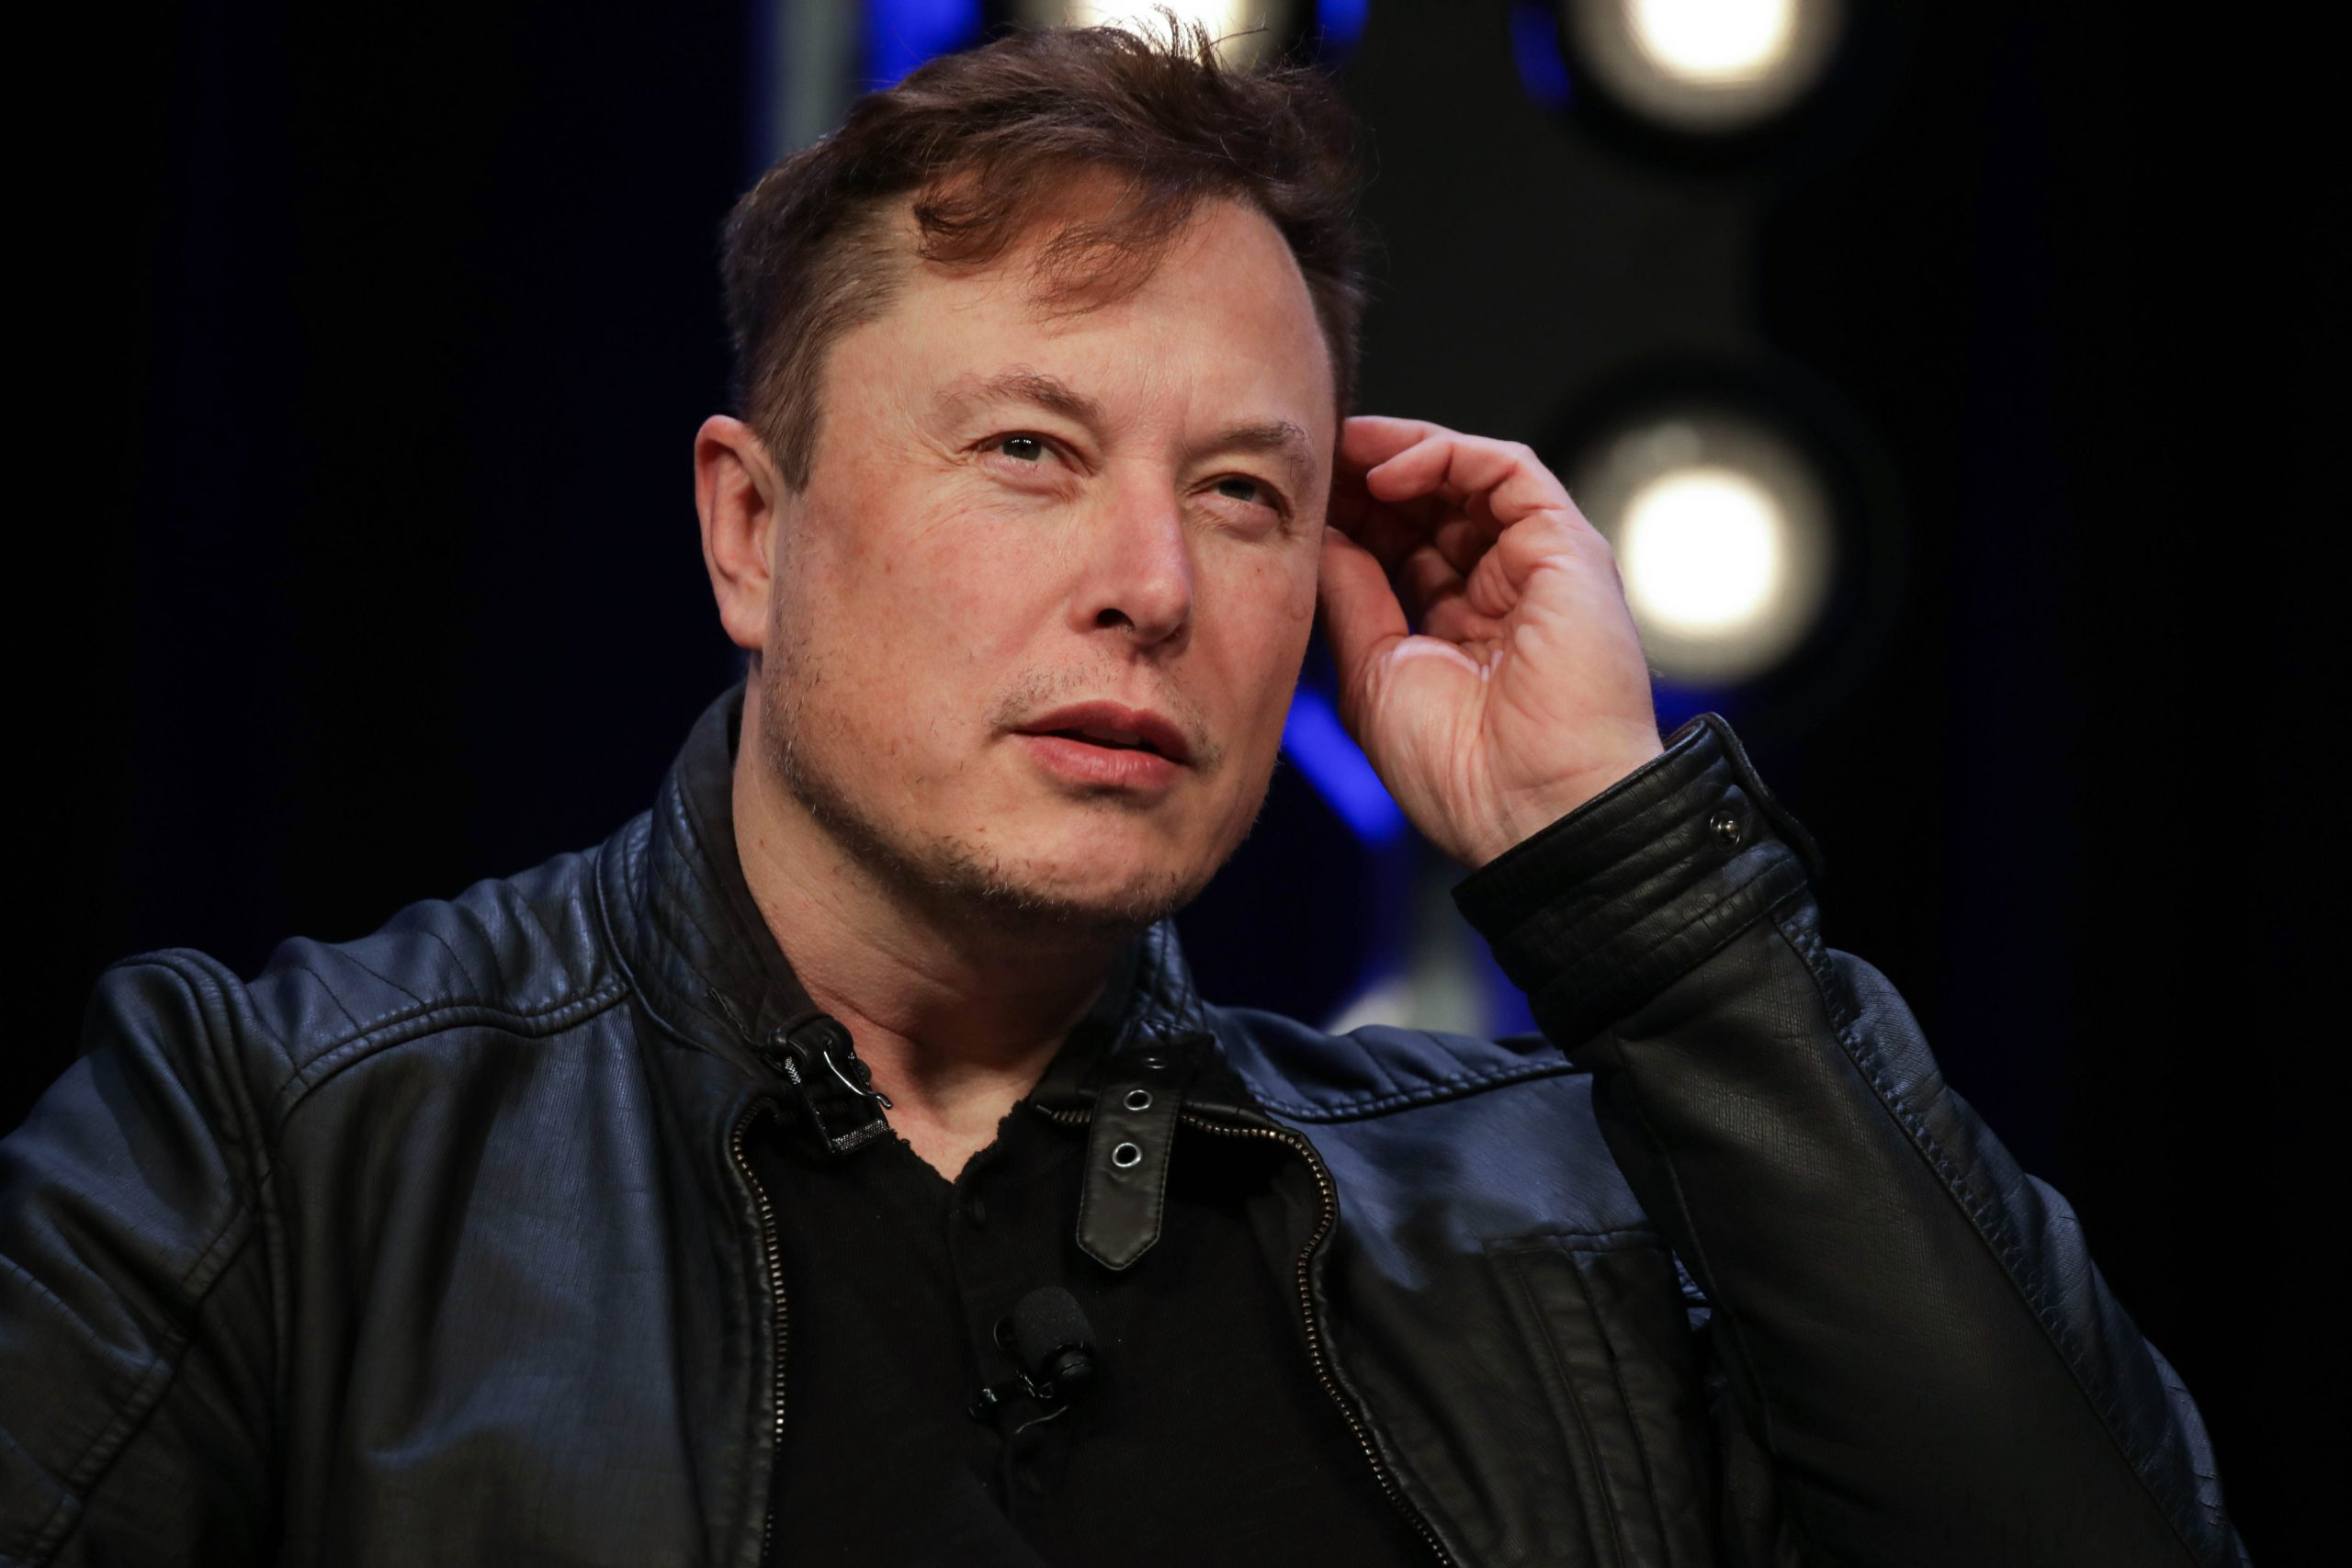 Dogecoin's price is rising ahead of Elon Musk's SNL appearance